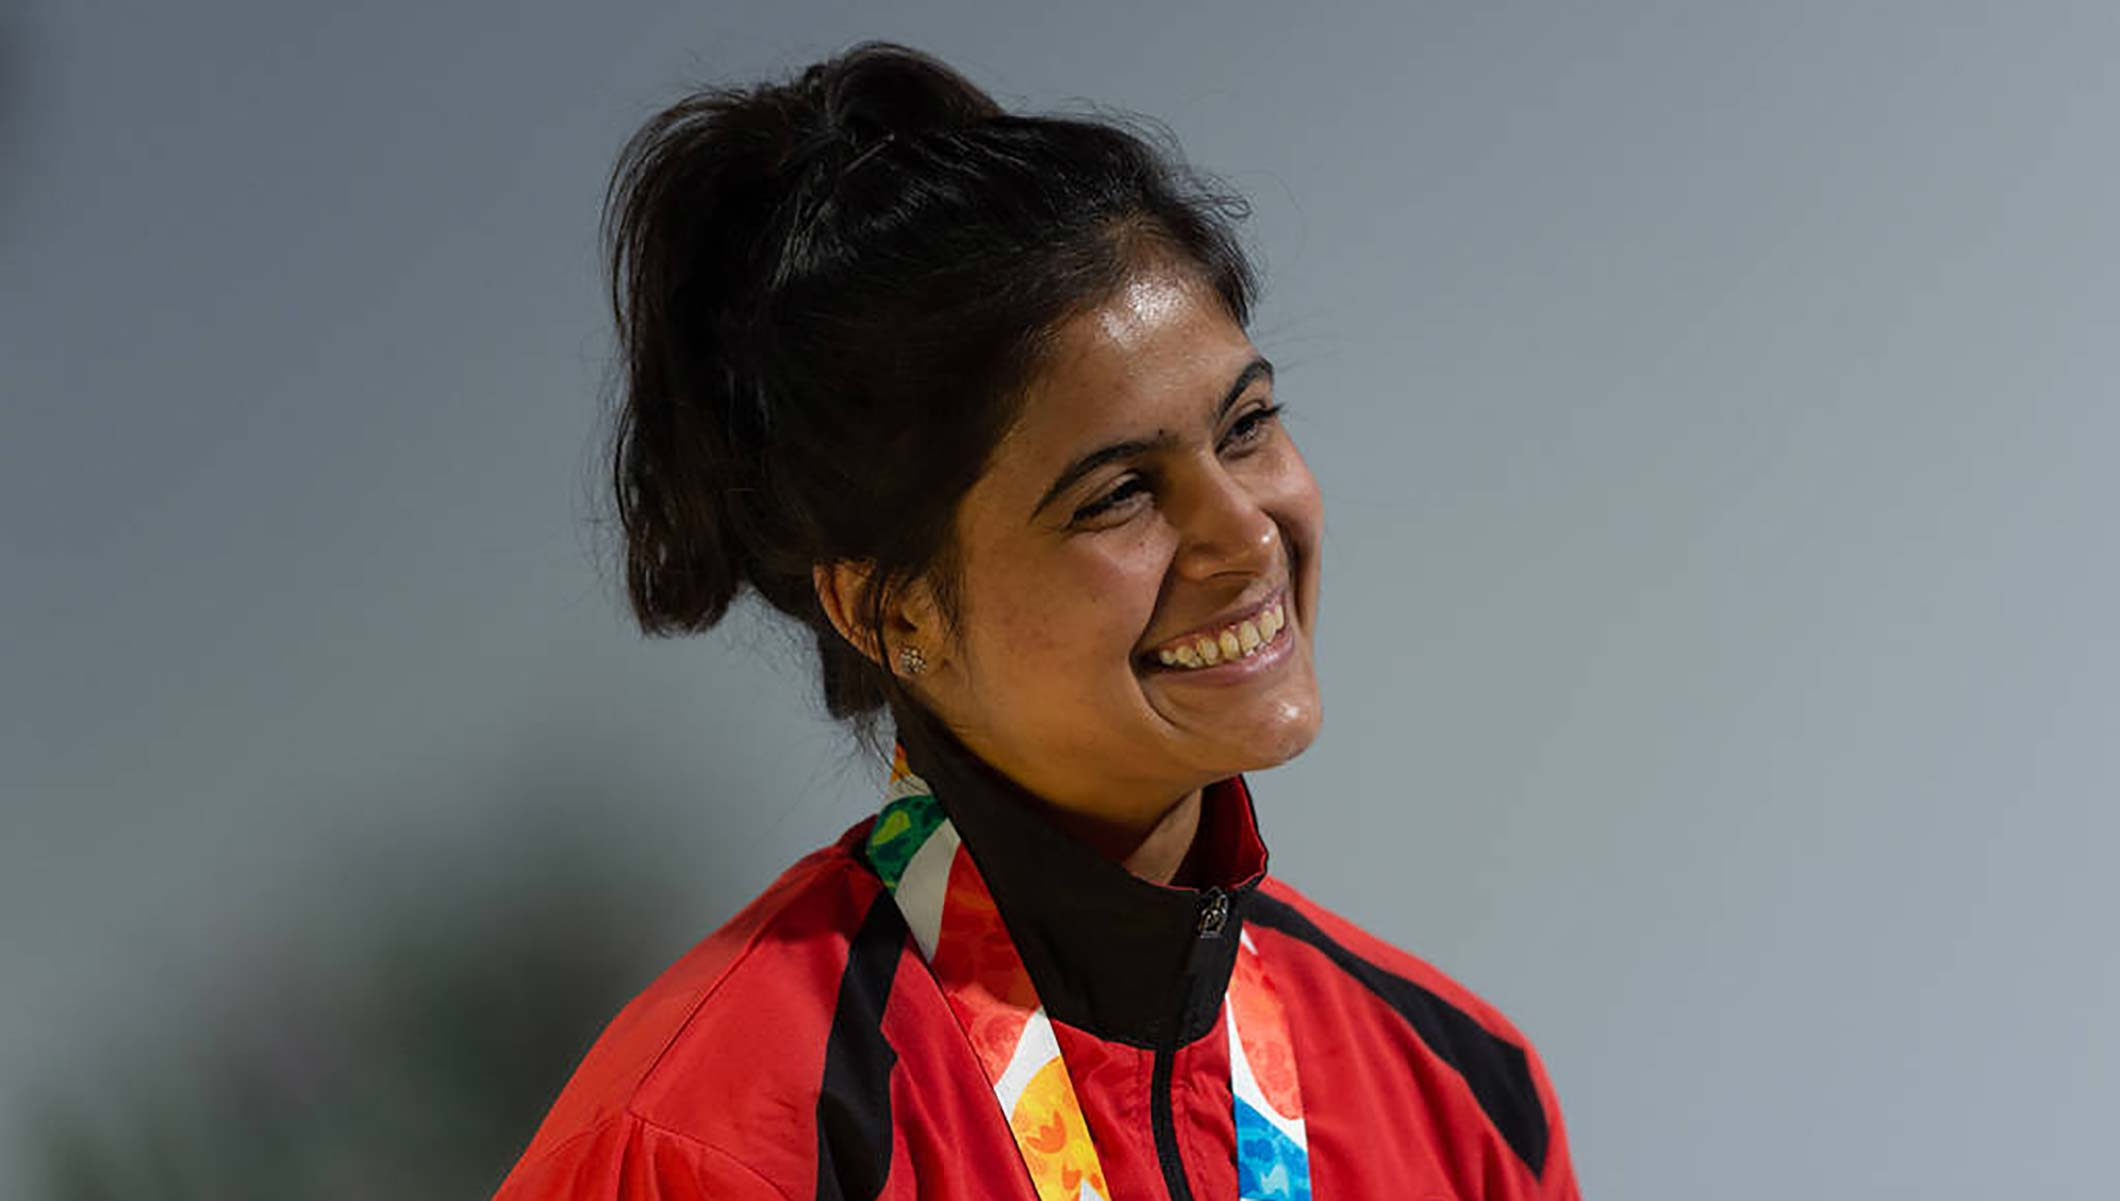 Indian shooter Manu Bhaker takes home one gold and one silver medal from the Buenos Aires 2018 Youth Olympic Games